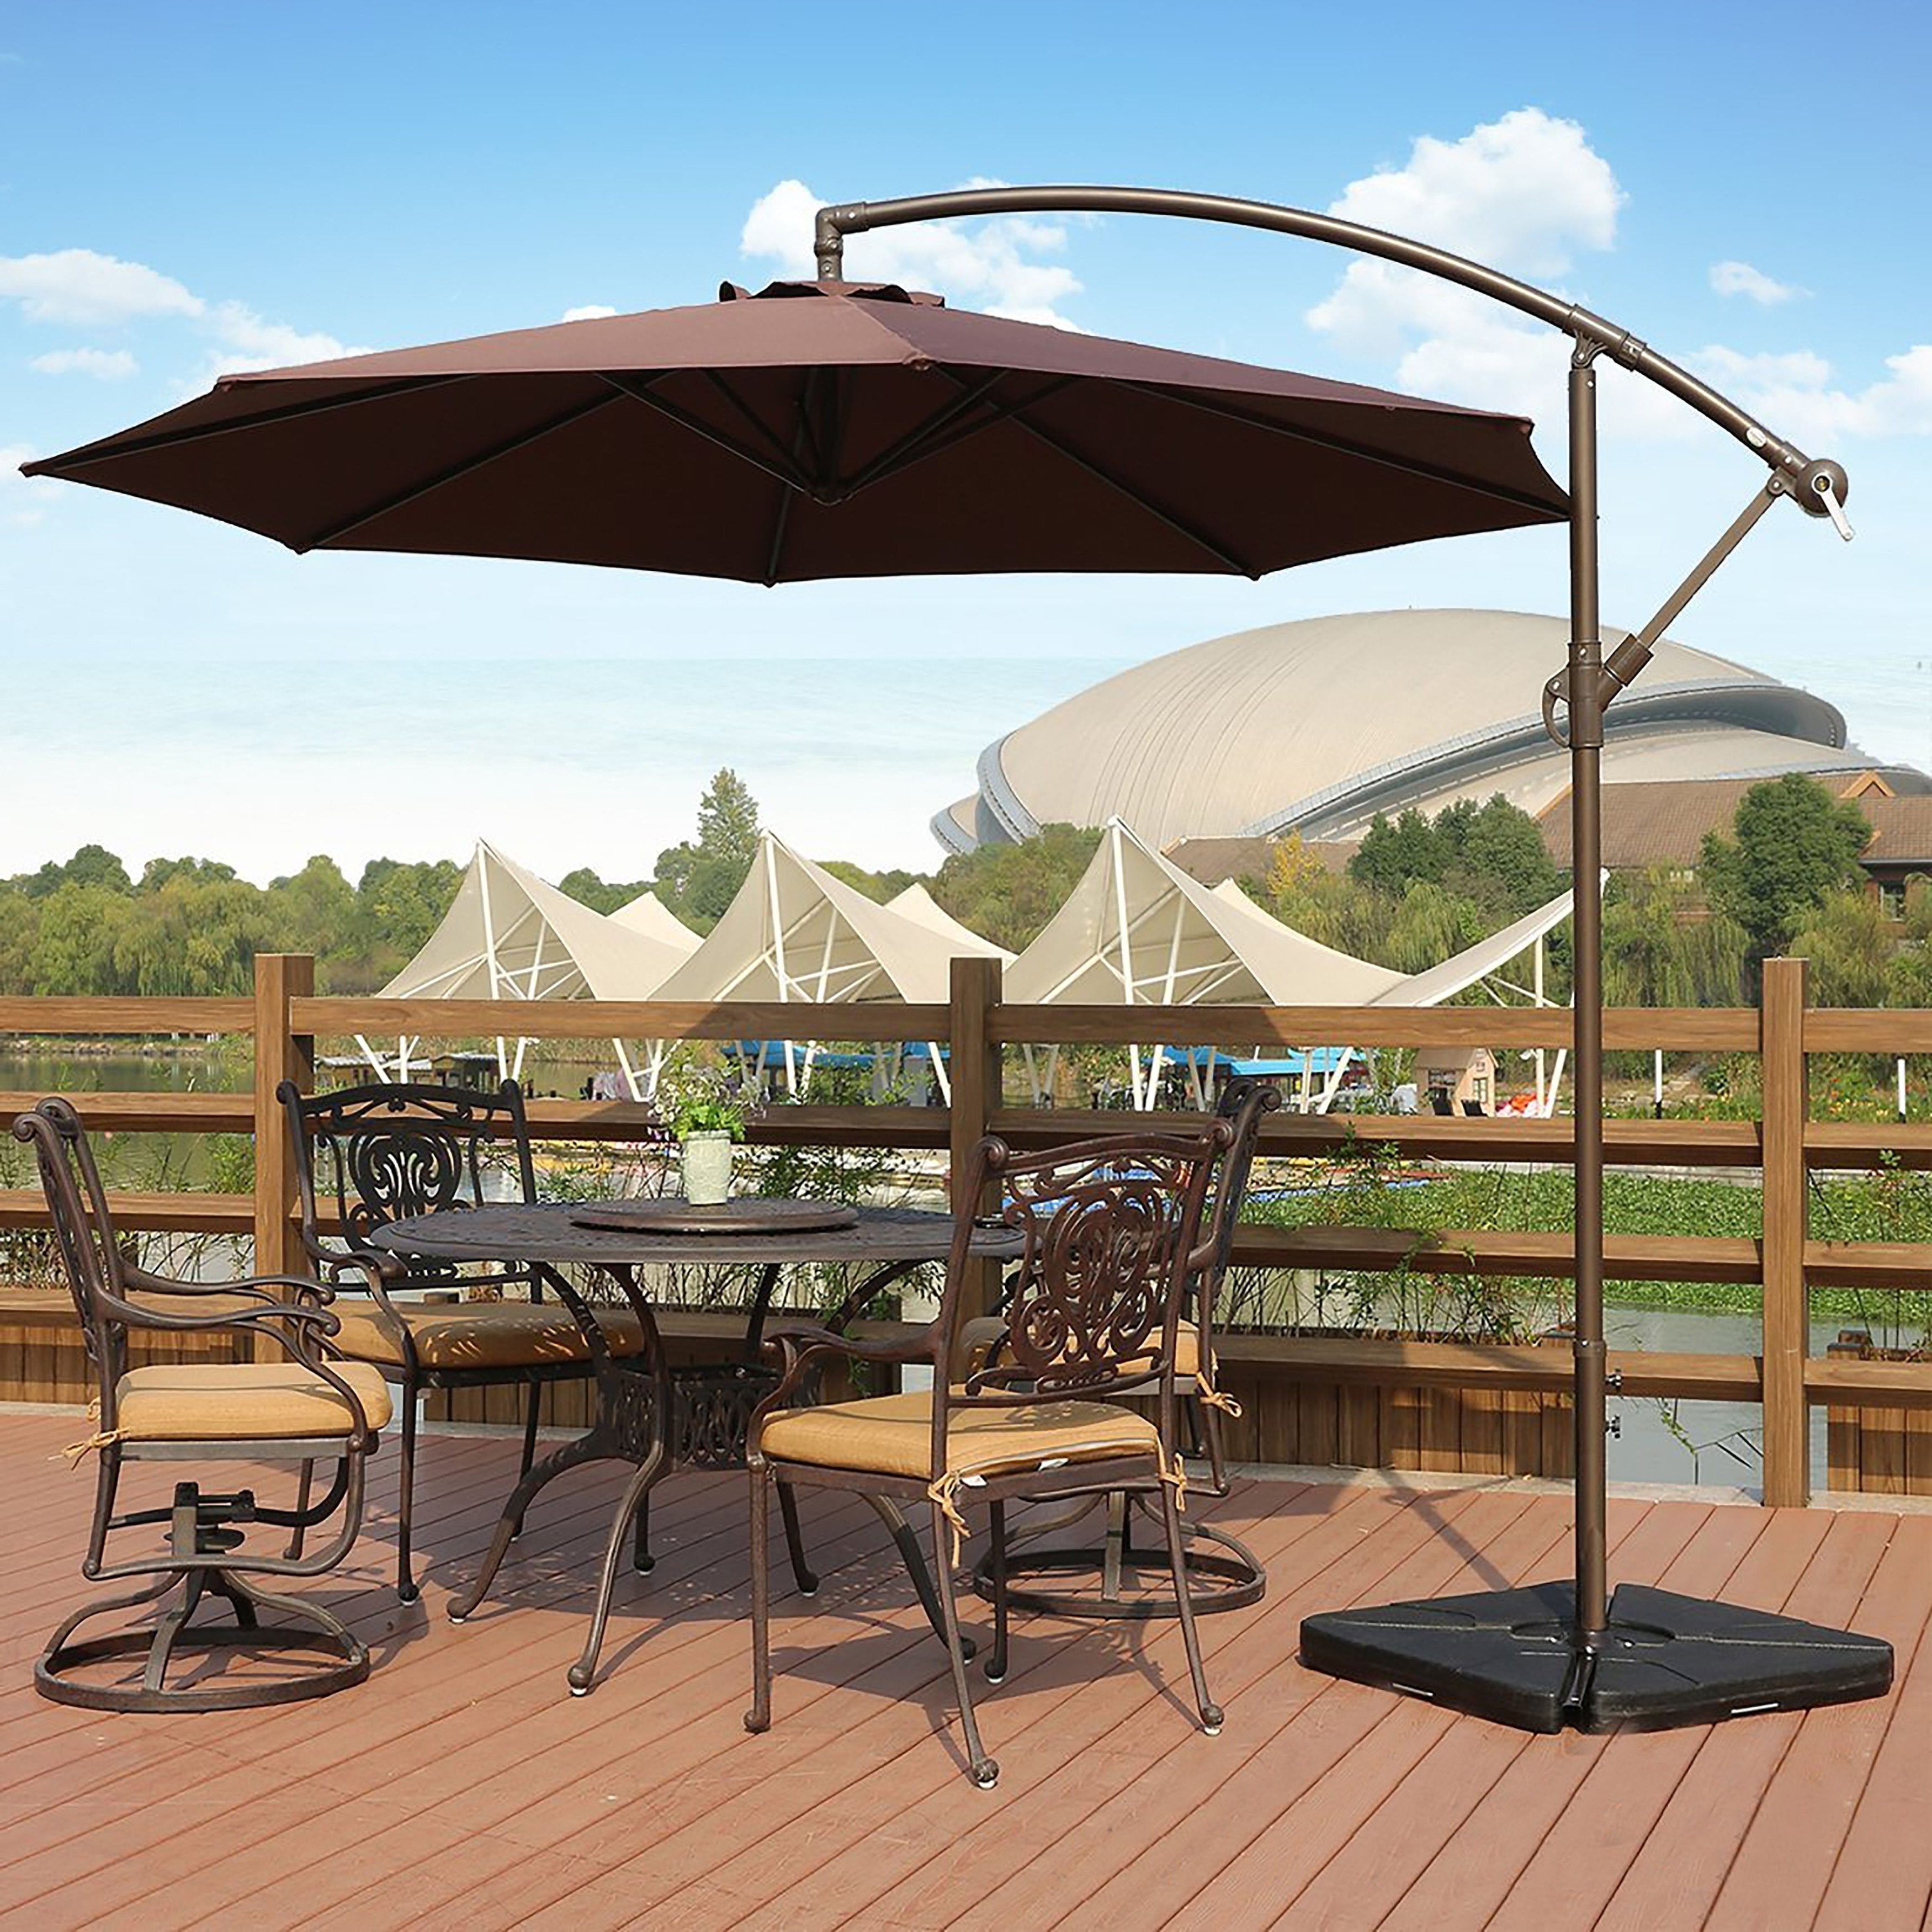 Westin Outdoor Weller 10 Ft Offset Cantilever Hanging Patio Umbrella Intended For Newest Hanging Offset Patio Umbrellas (View 8 of 20)